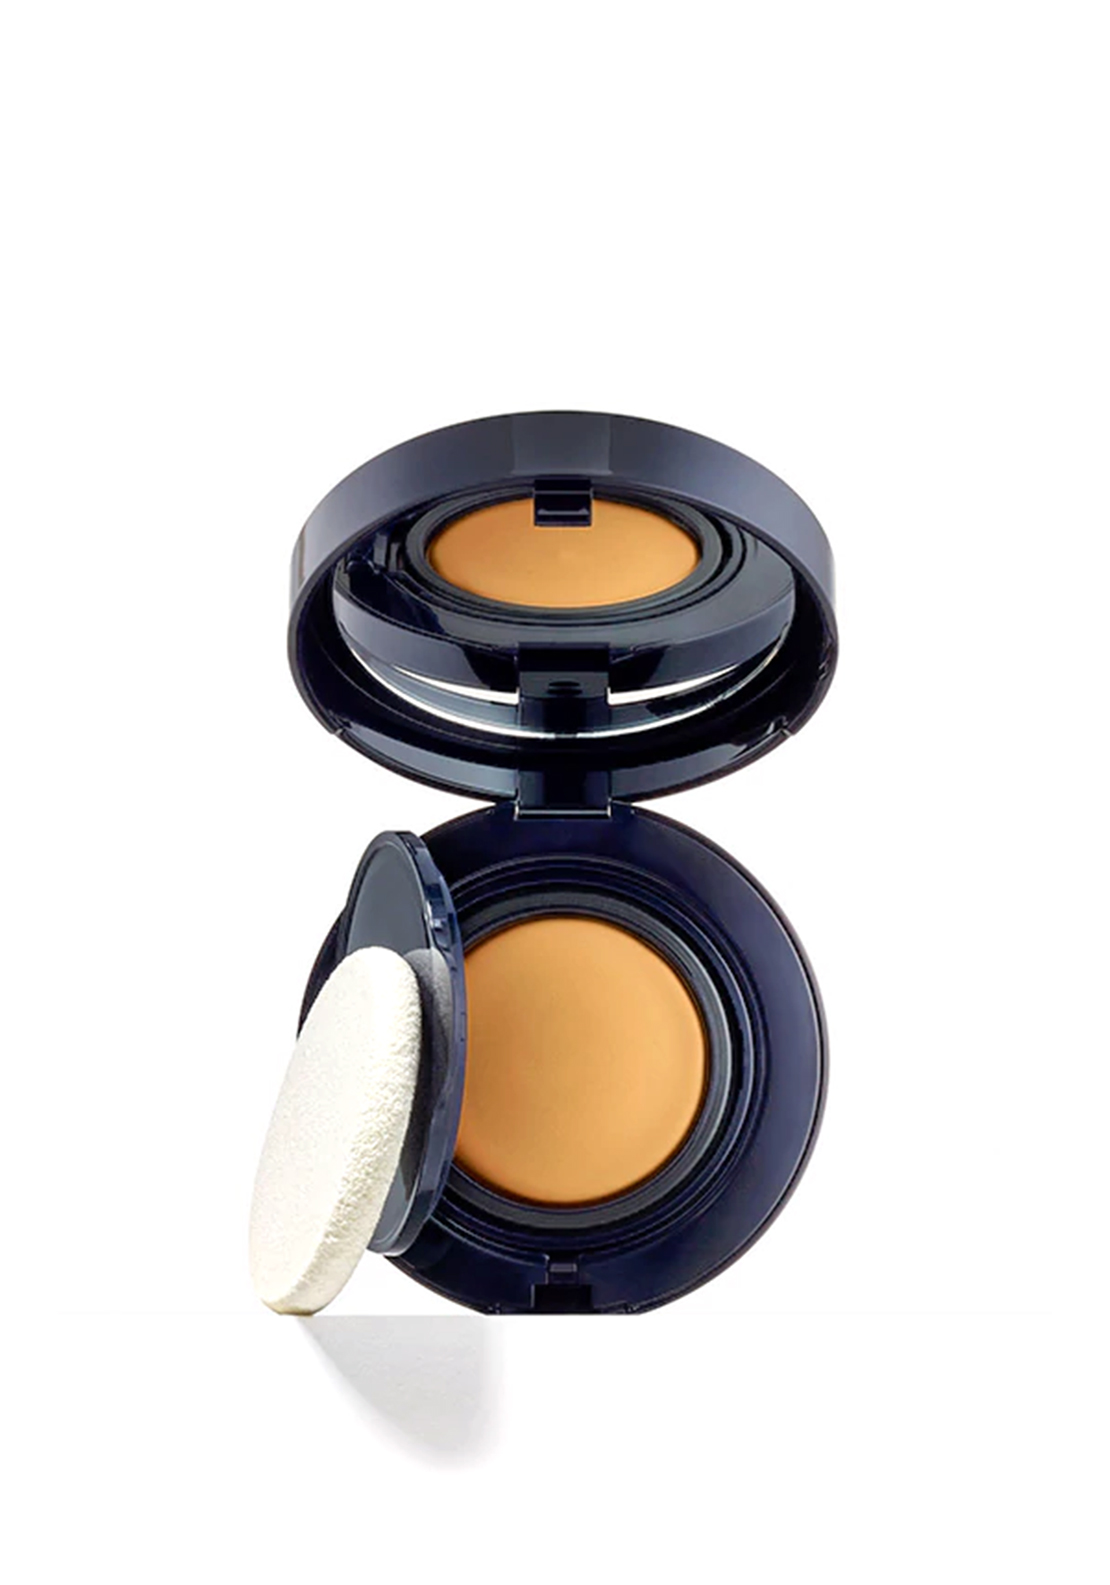 Estee Lauder Perfectionist Compact Makeup, Honey Bronze